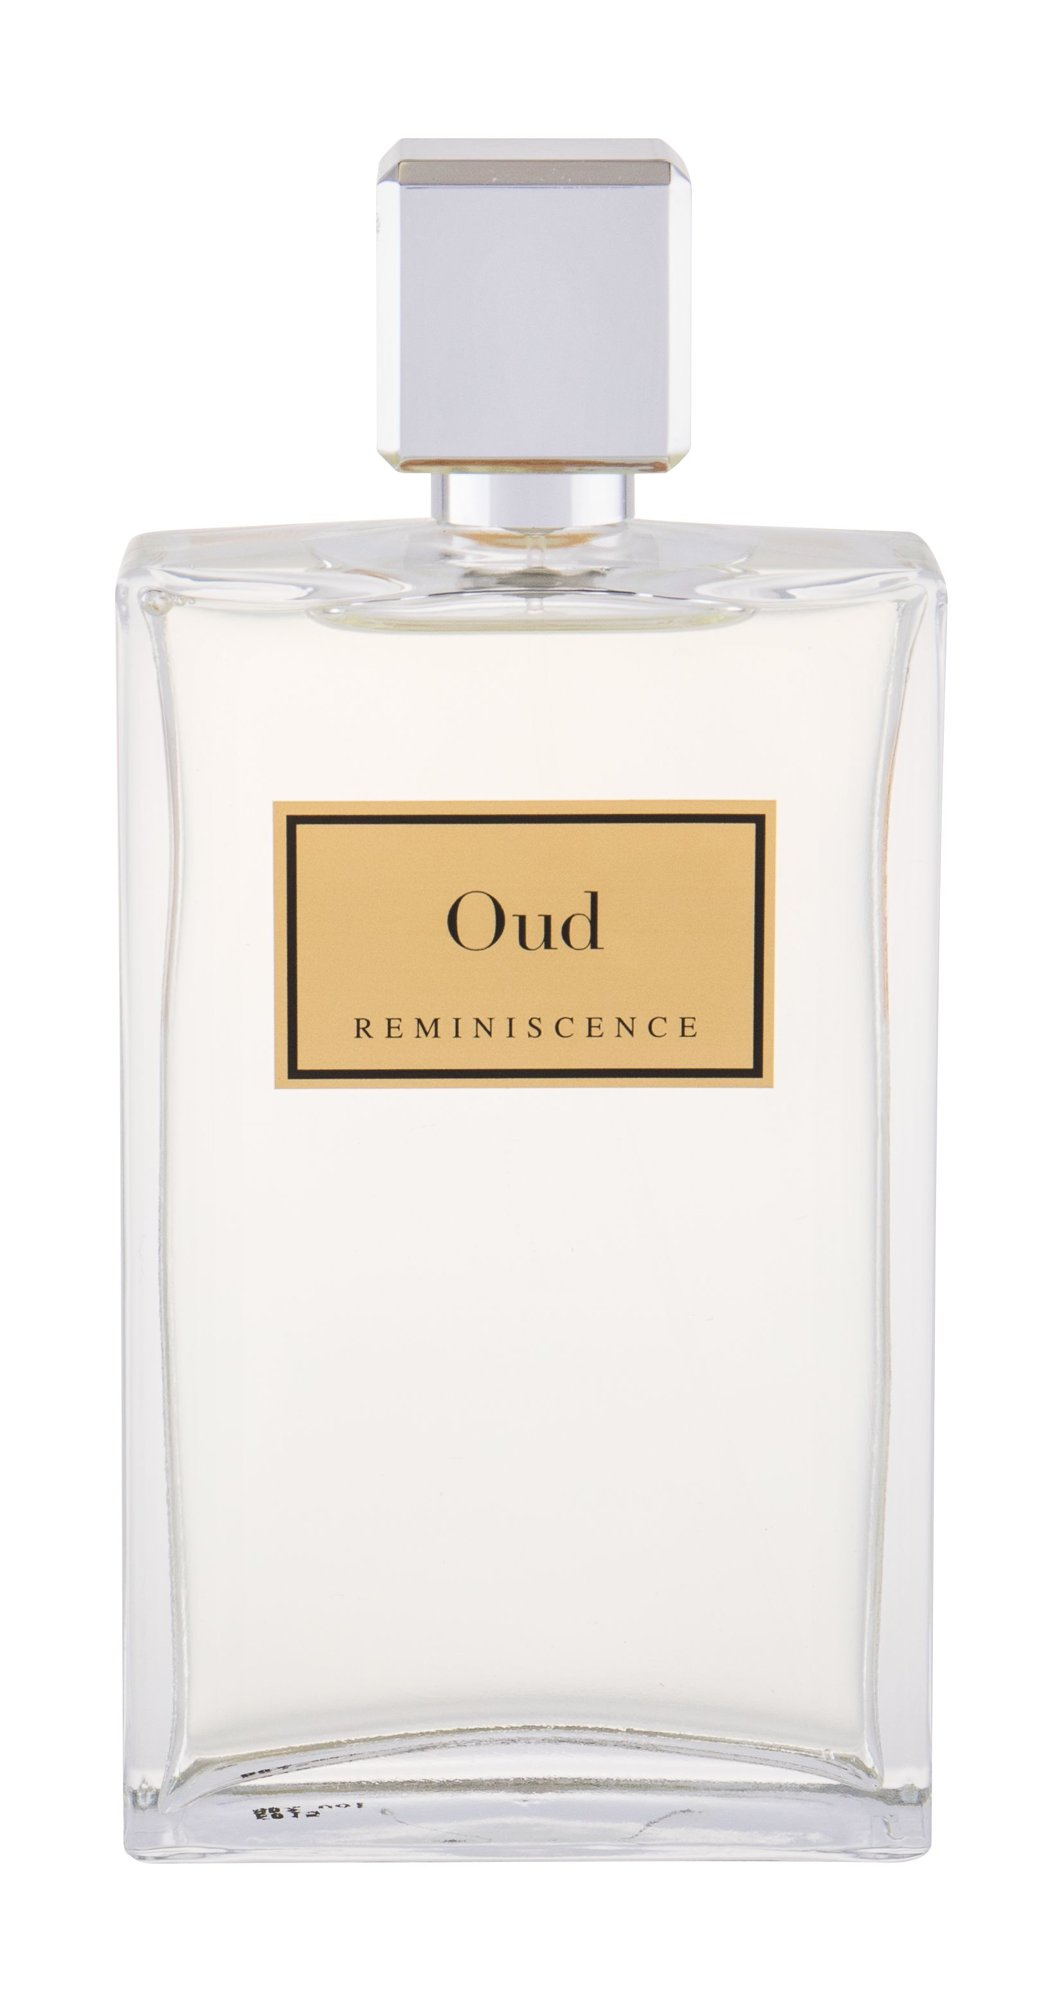 Reminiscence Oud, edp 100ml